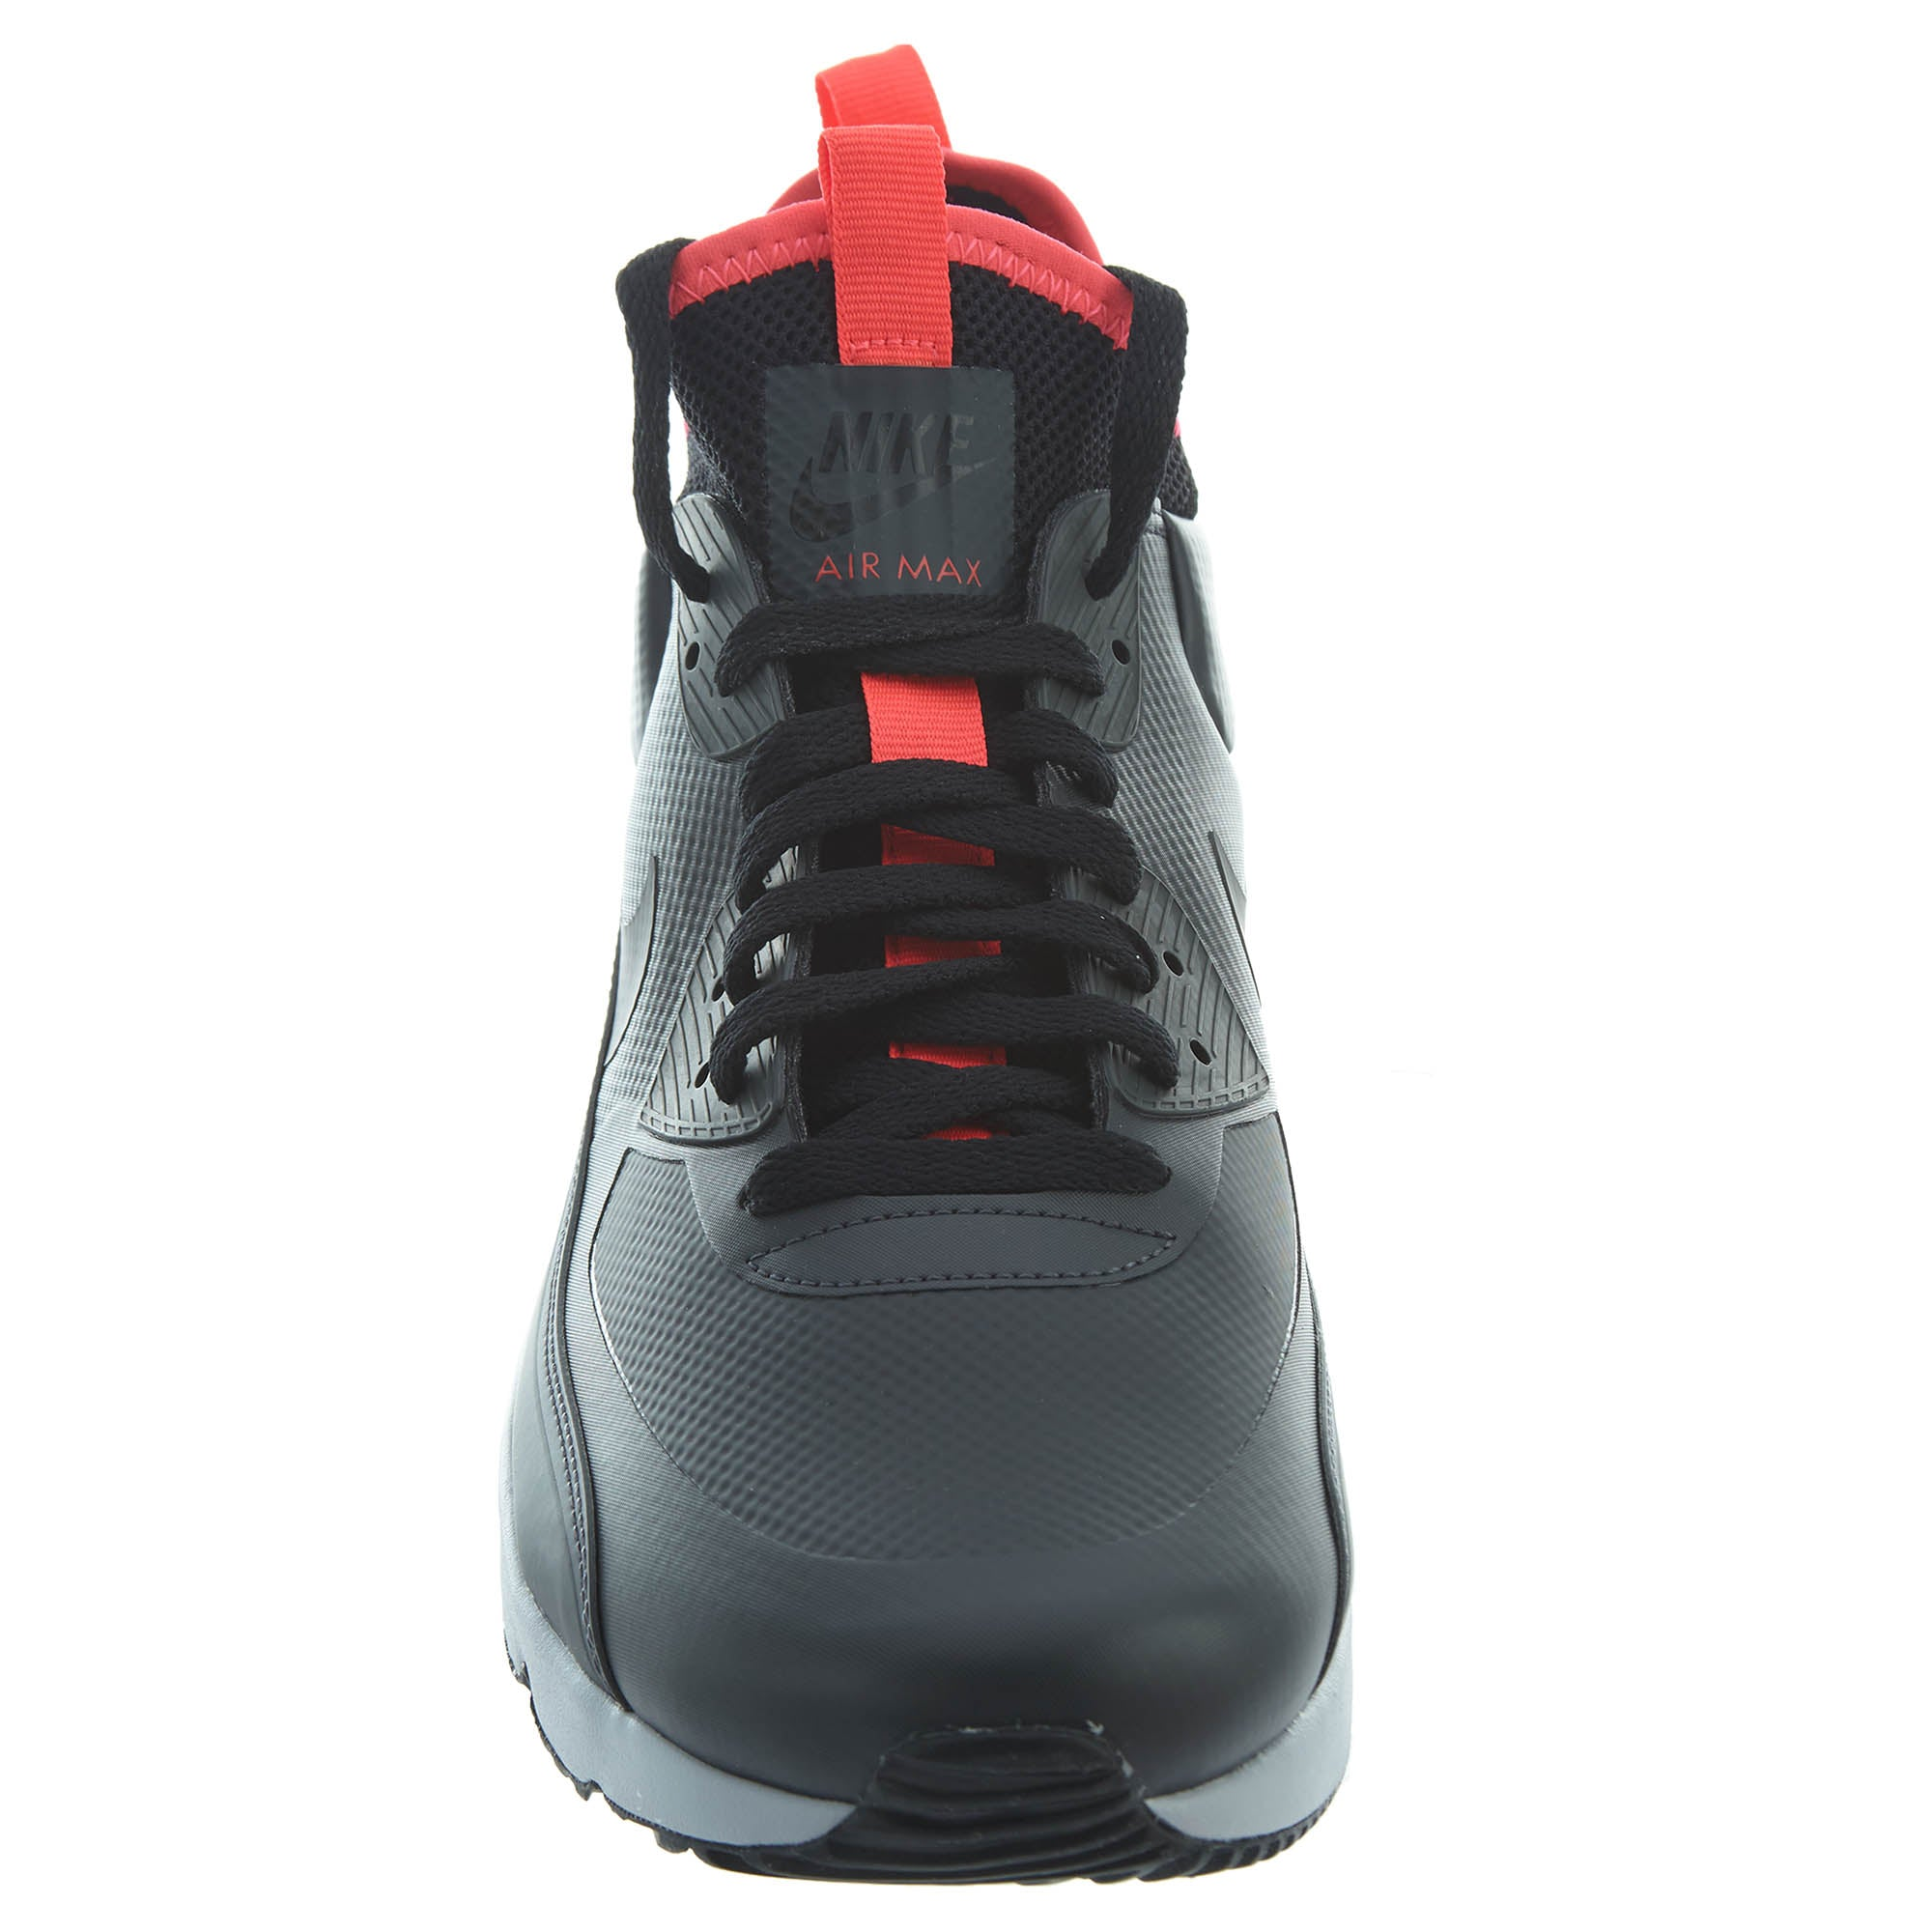 4765ed1695a3 Nike Air Max 90 Ultra Mid Winter Mens Style   924458-003